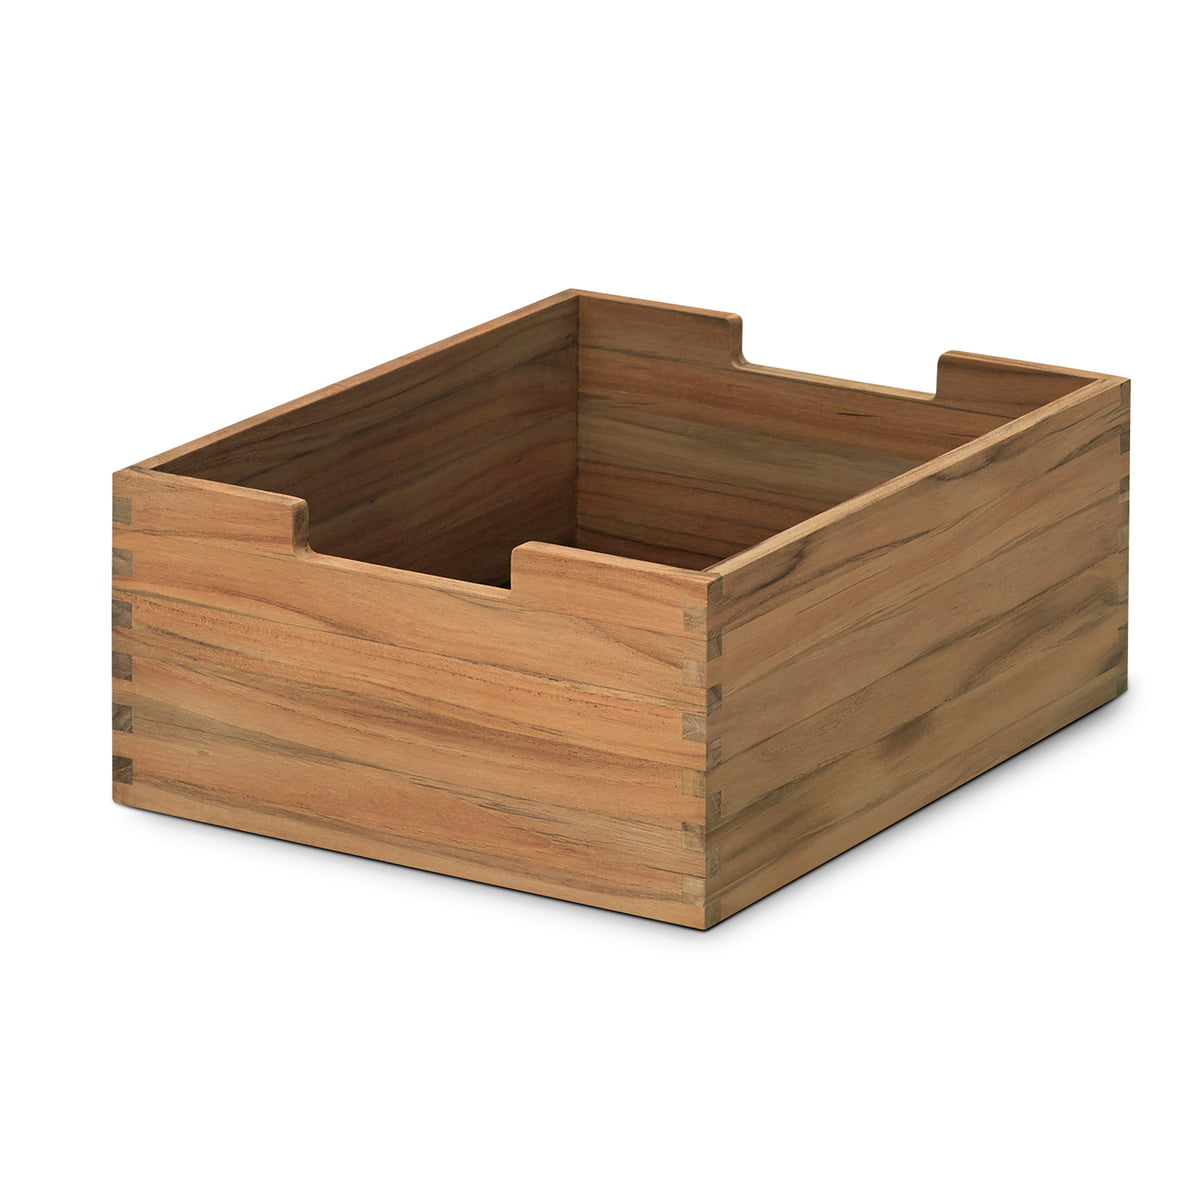 Cutter Box By Skagerak In The Shop